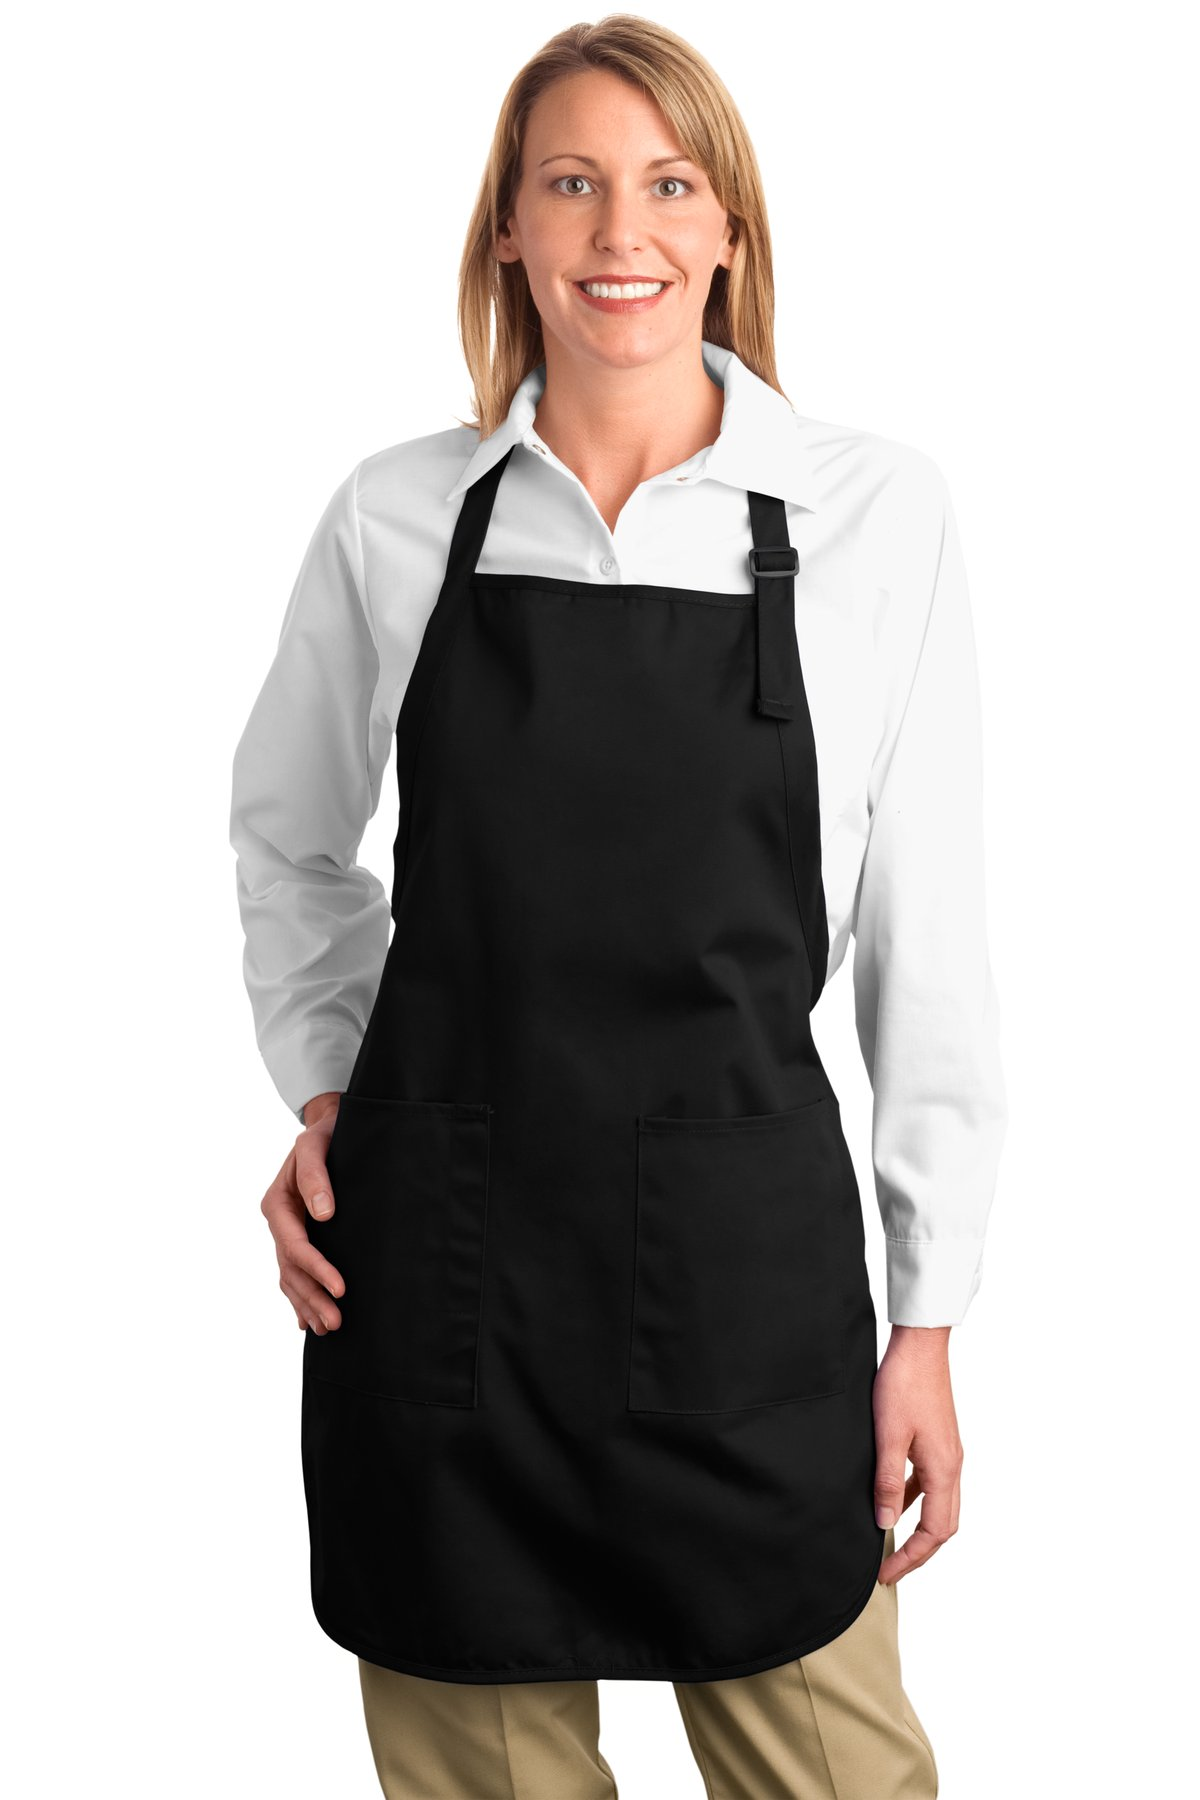 Port Authority ®  Full-Length Apron with Pockets.  A500 - Black